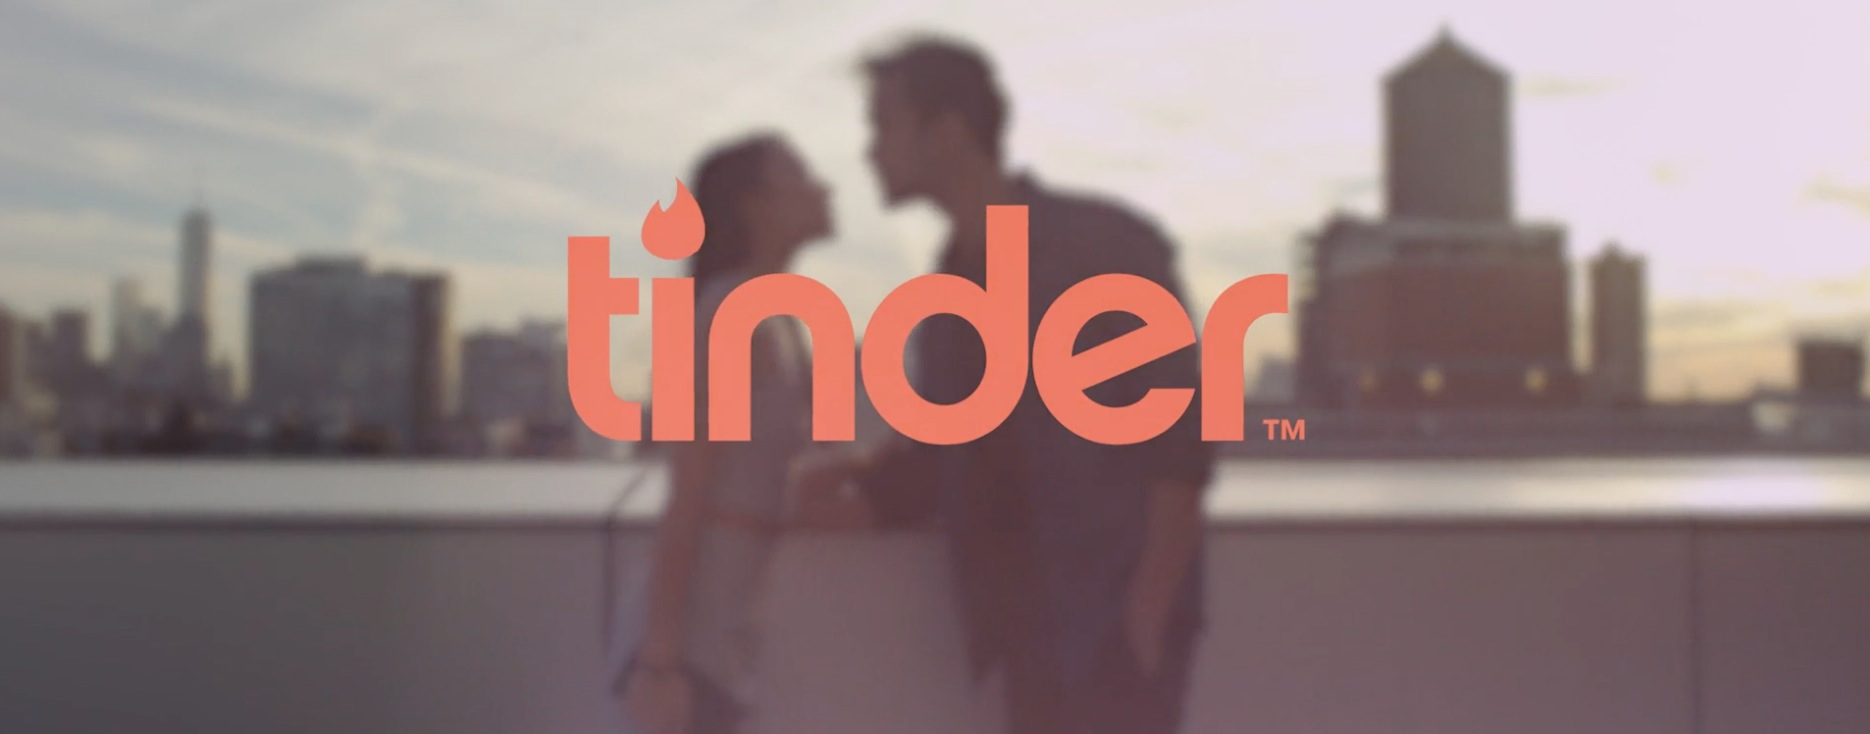 How to find ts on tinder